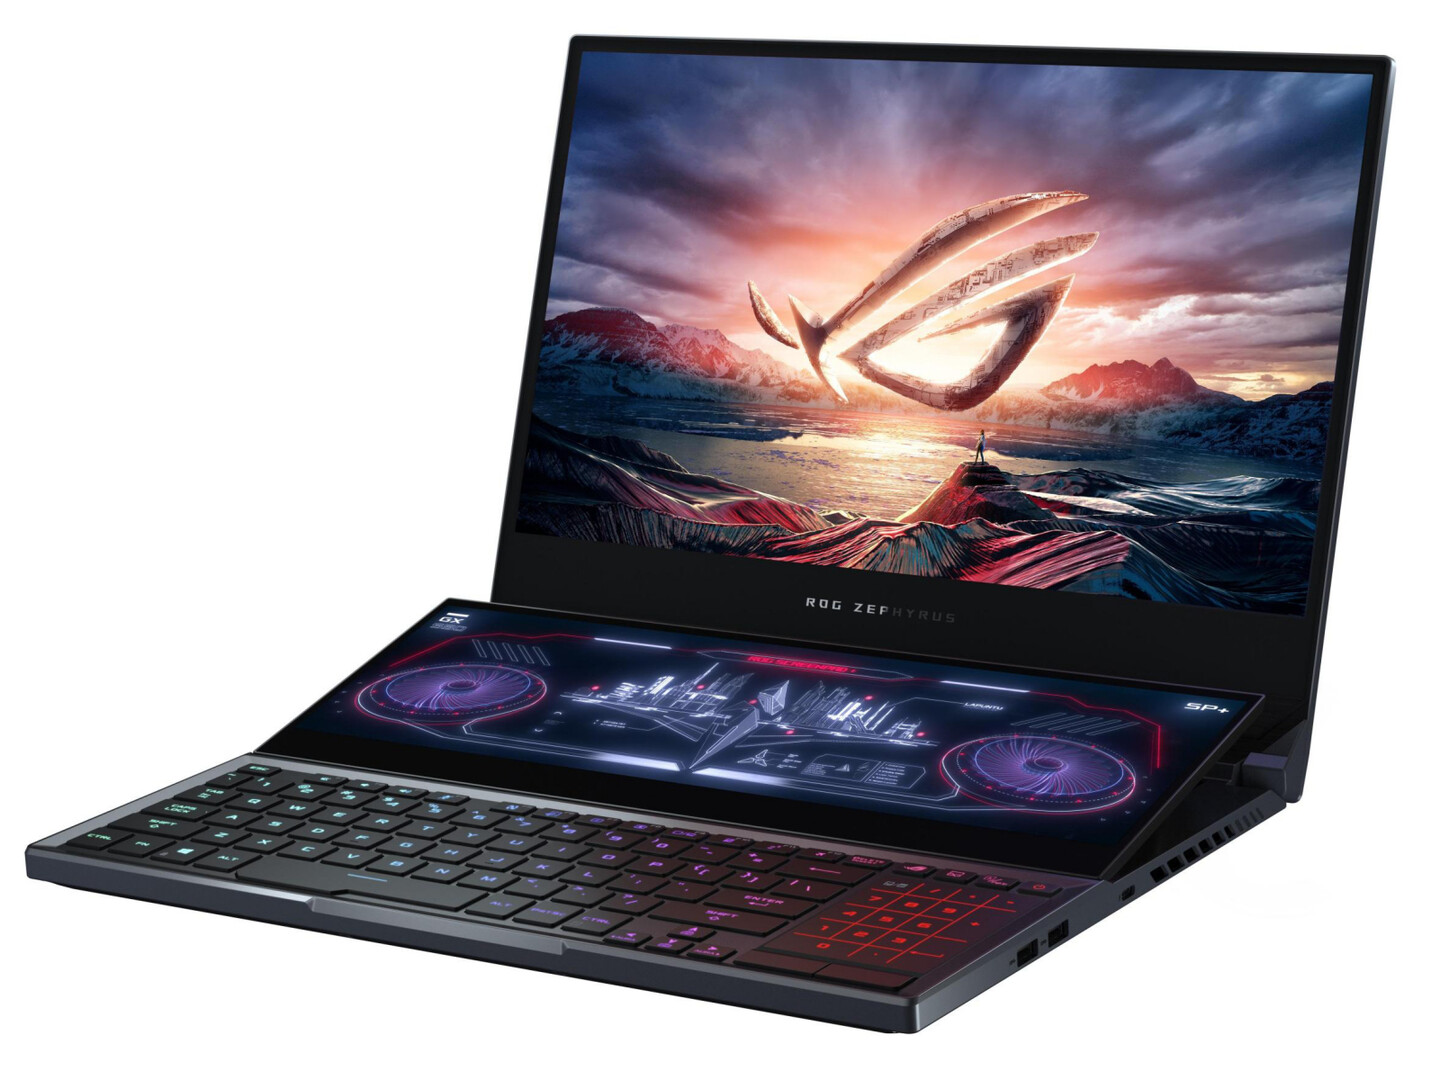 Asus ROG Zephyrus Duo GX551QS with Ryzen 9 5900H and RTX 3080 Mobile Geekbench listing confirms 6,144 CUDA cores and 16 GB VRAM, HP Omen 15 with RTX 3070 Mobile also spotted